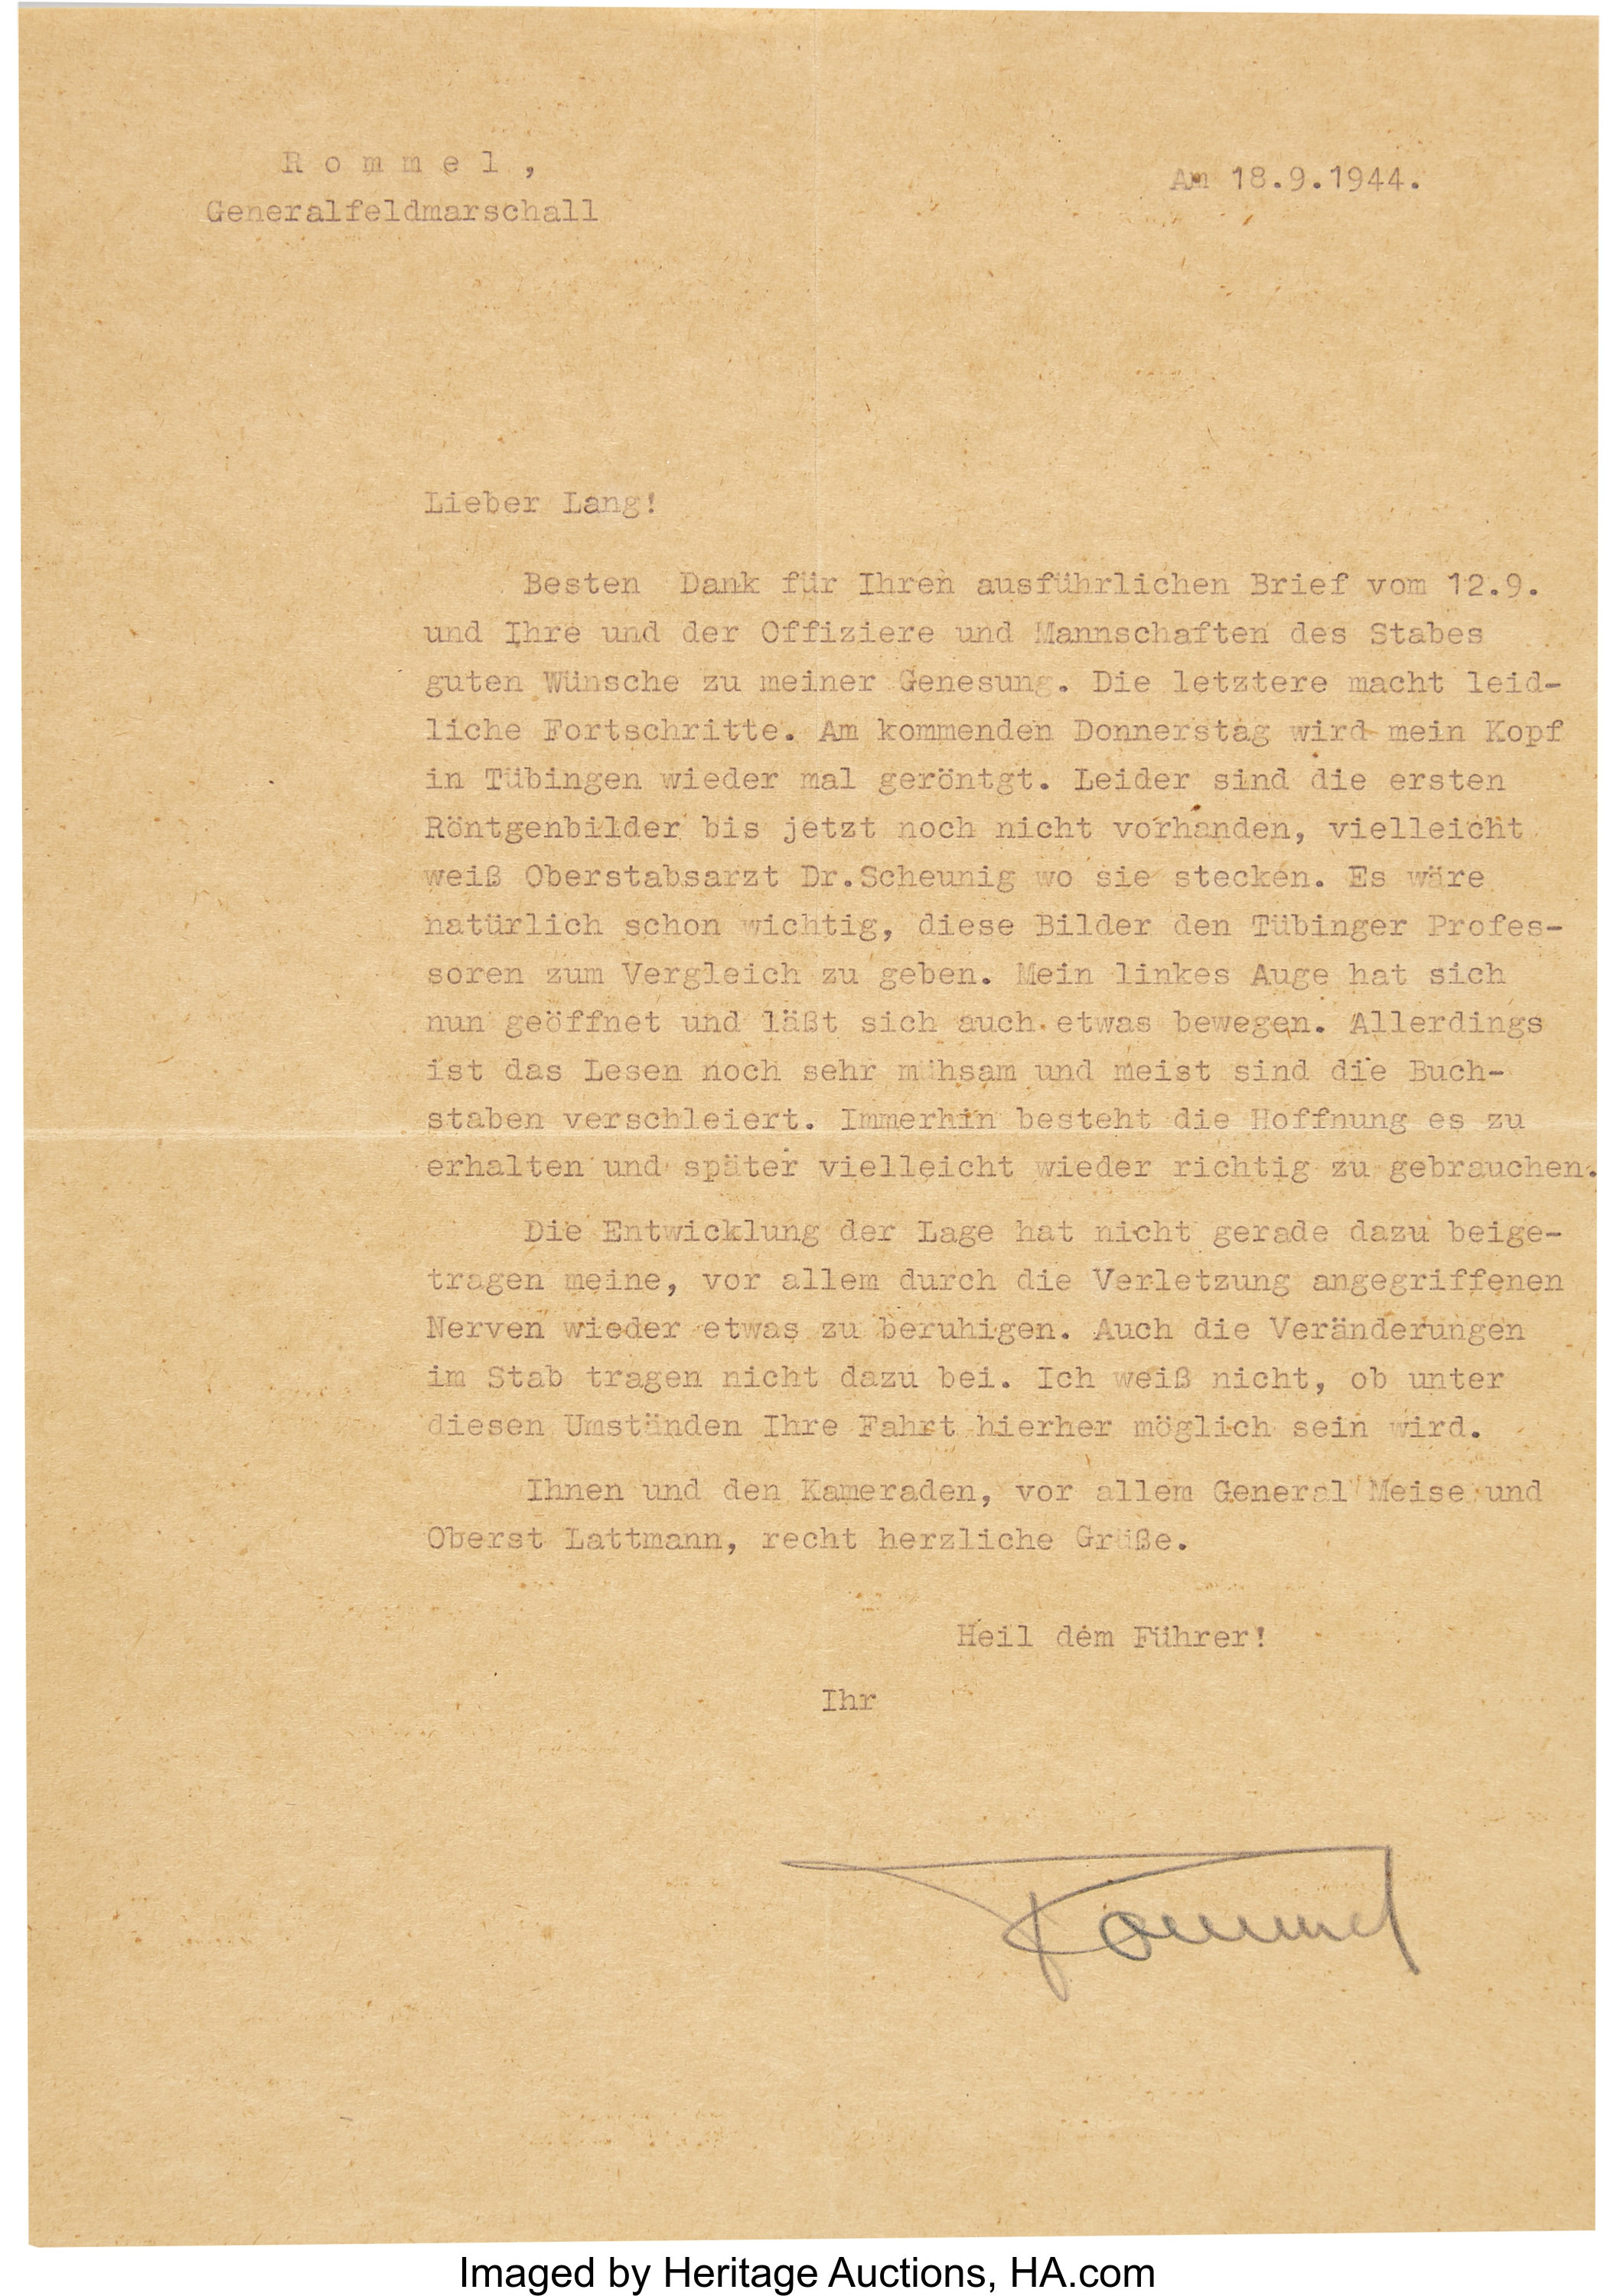 Erwin Rommel Typed Letter Signed to Captain Hellmuth Lang